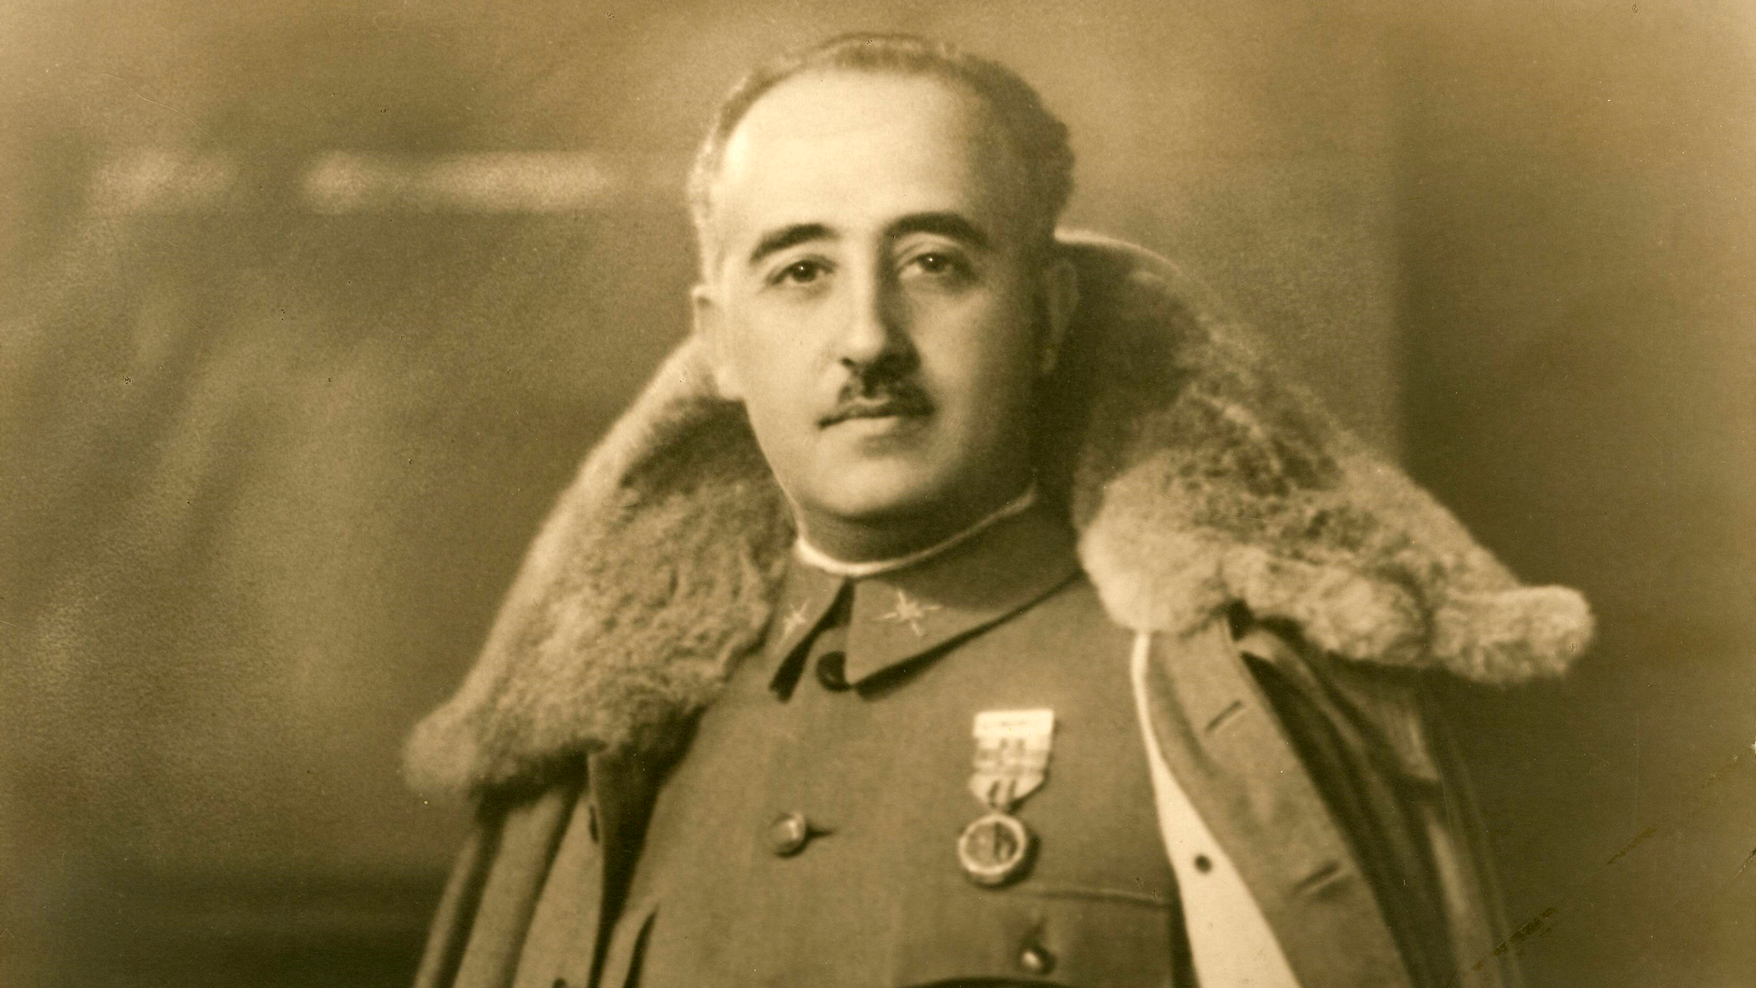 Francisco_Franco_1930